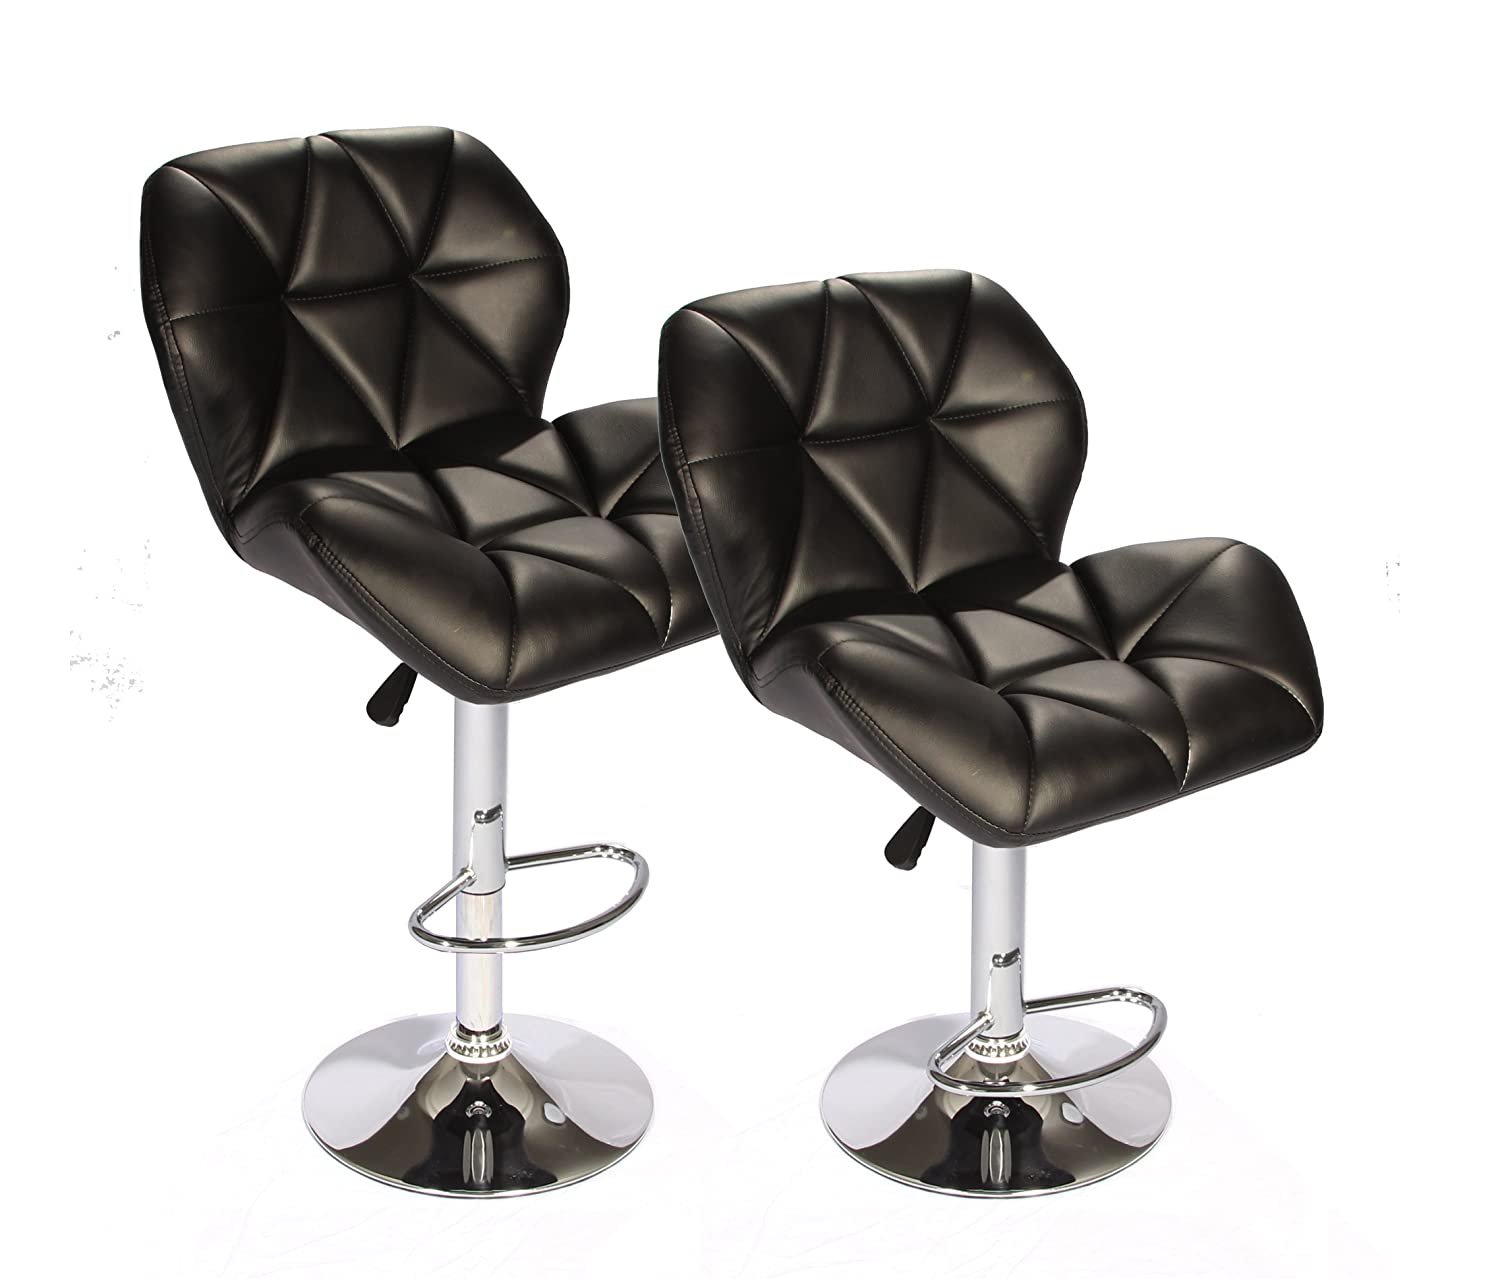 amazoncom set of 2 black bar stools leather modern hydraulic swivel dinning chair kitchen u0026 dining